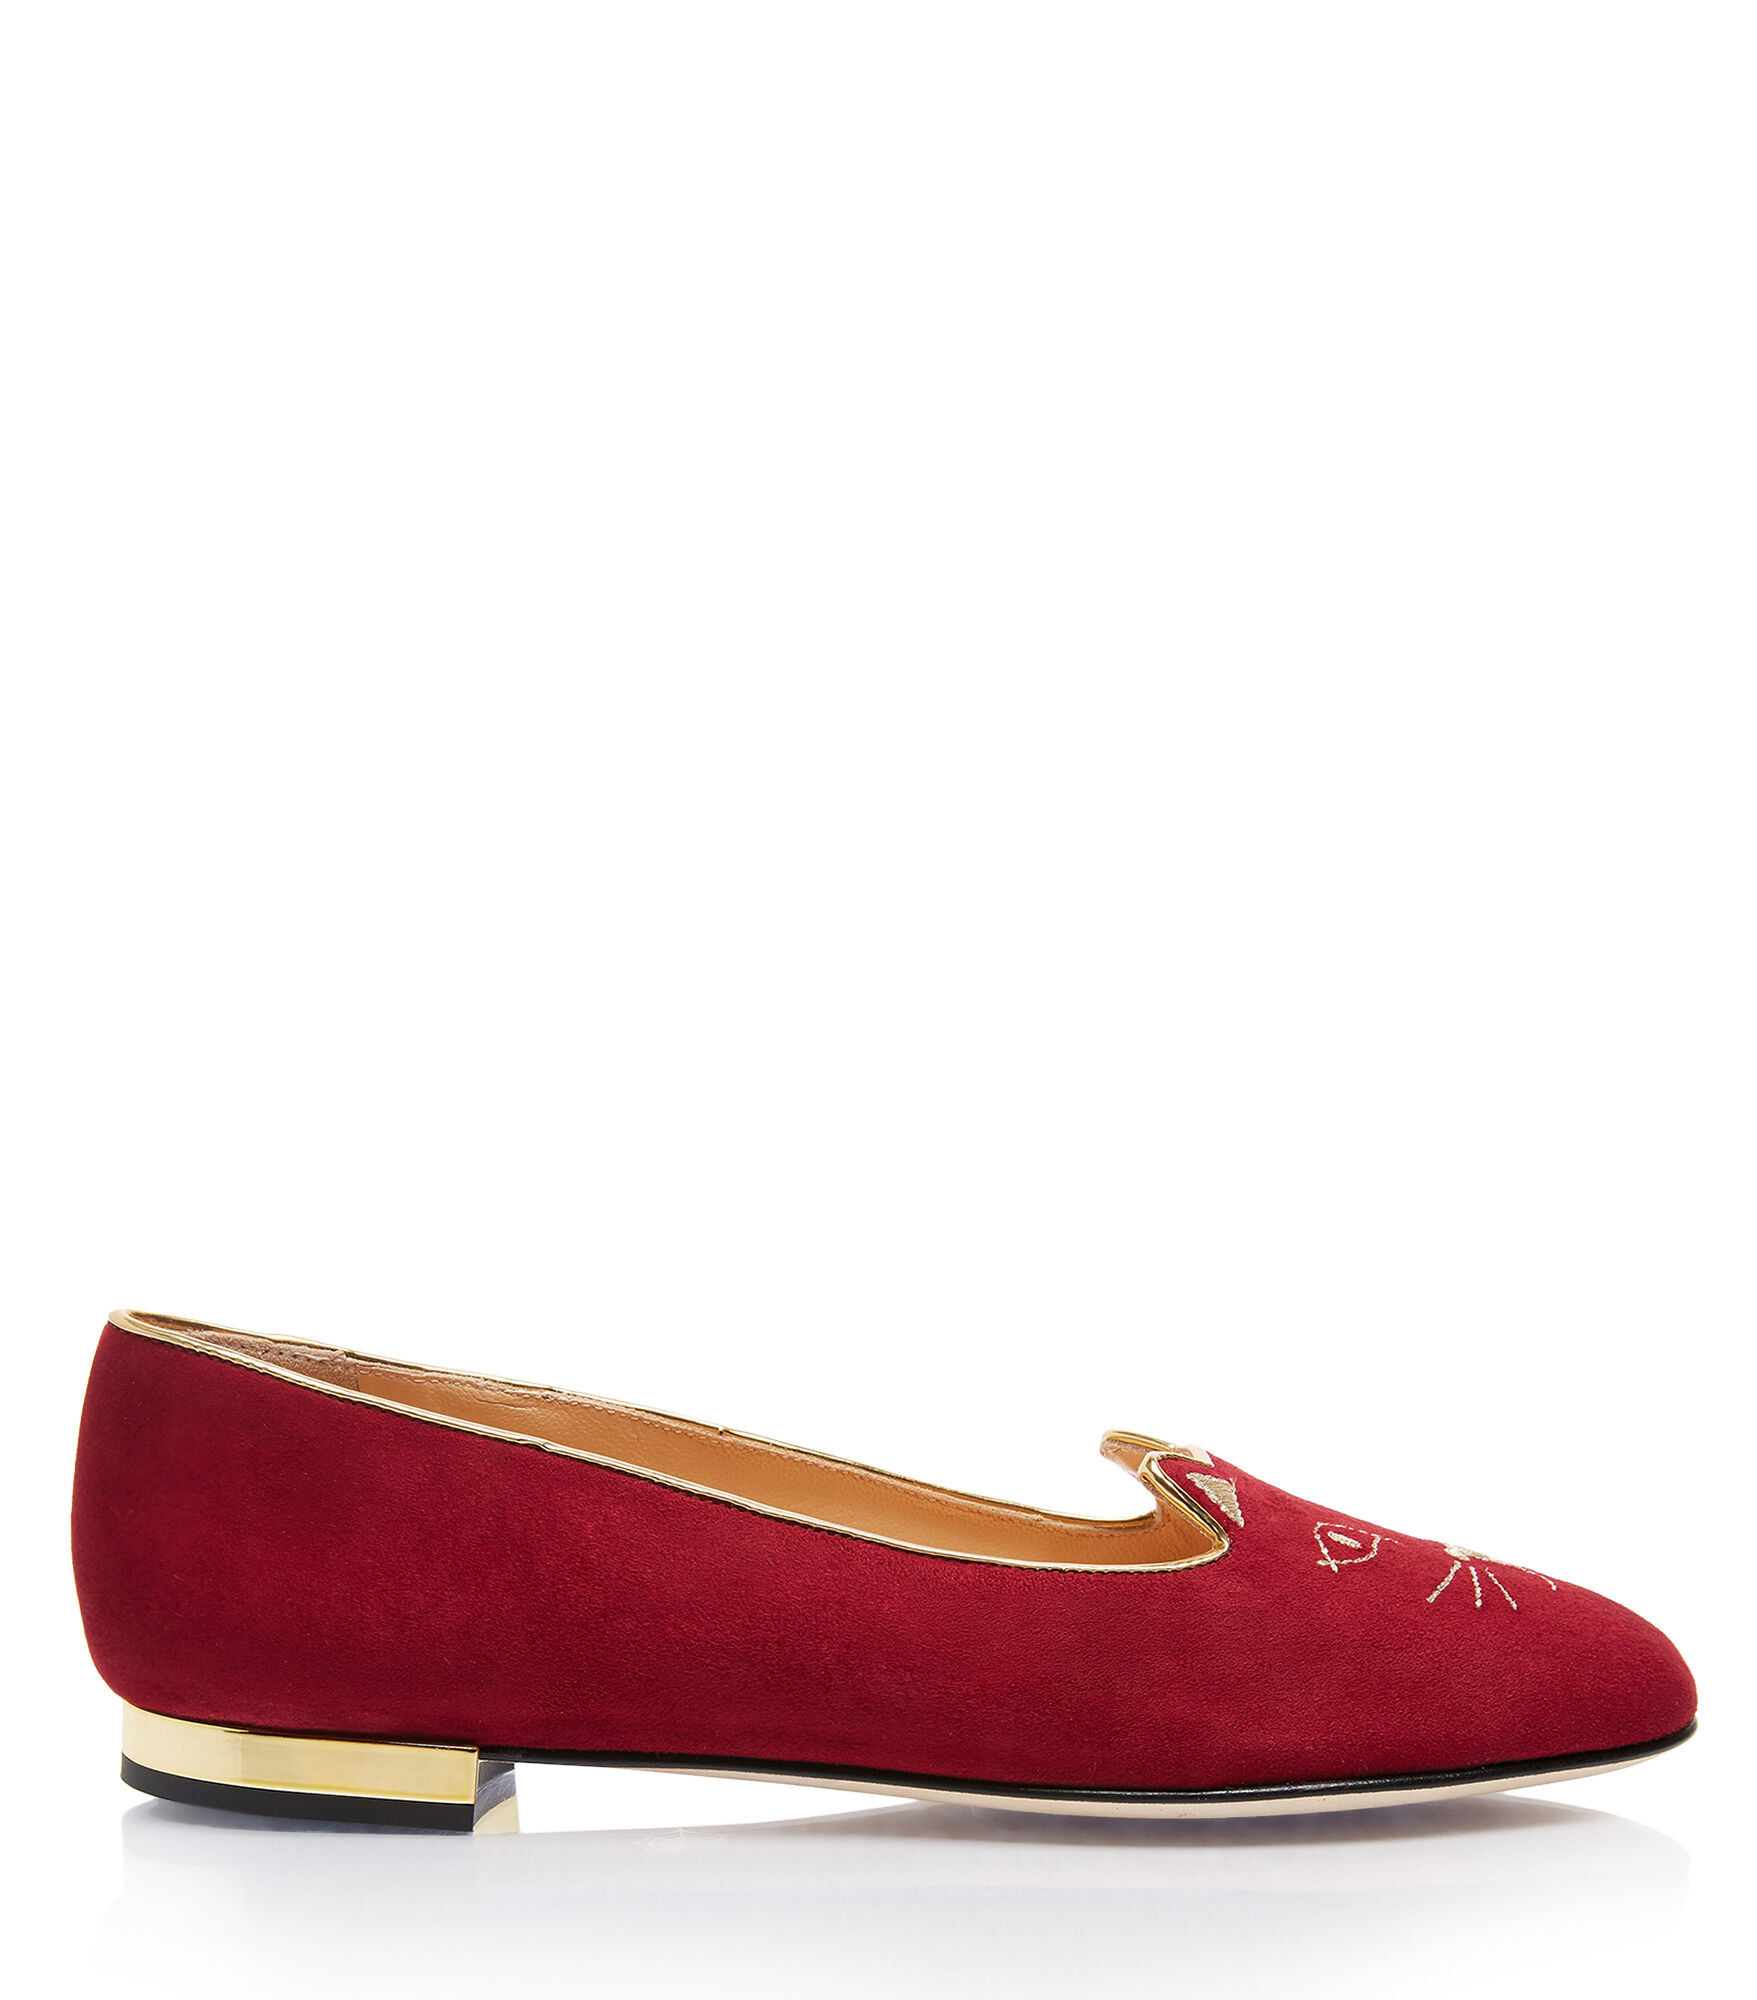 Charlotte Olympia Soft Kitty Flats In Bordeaux